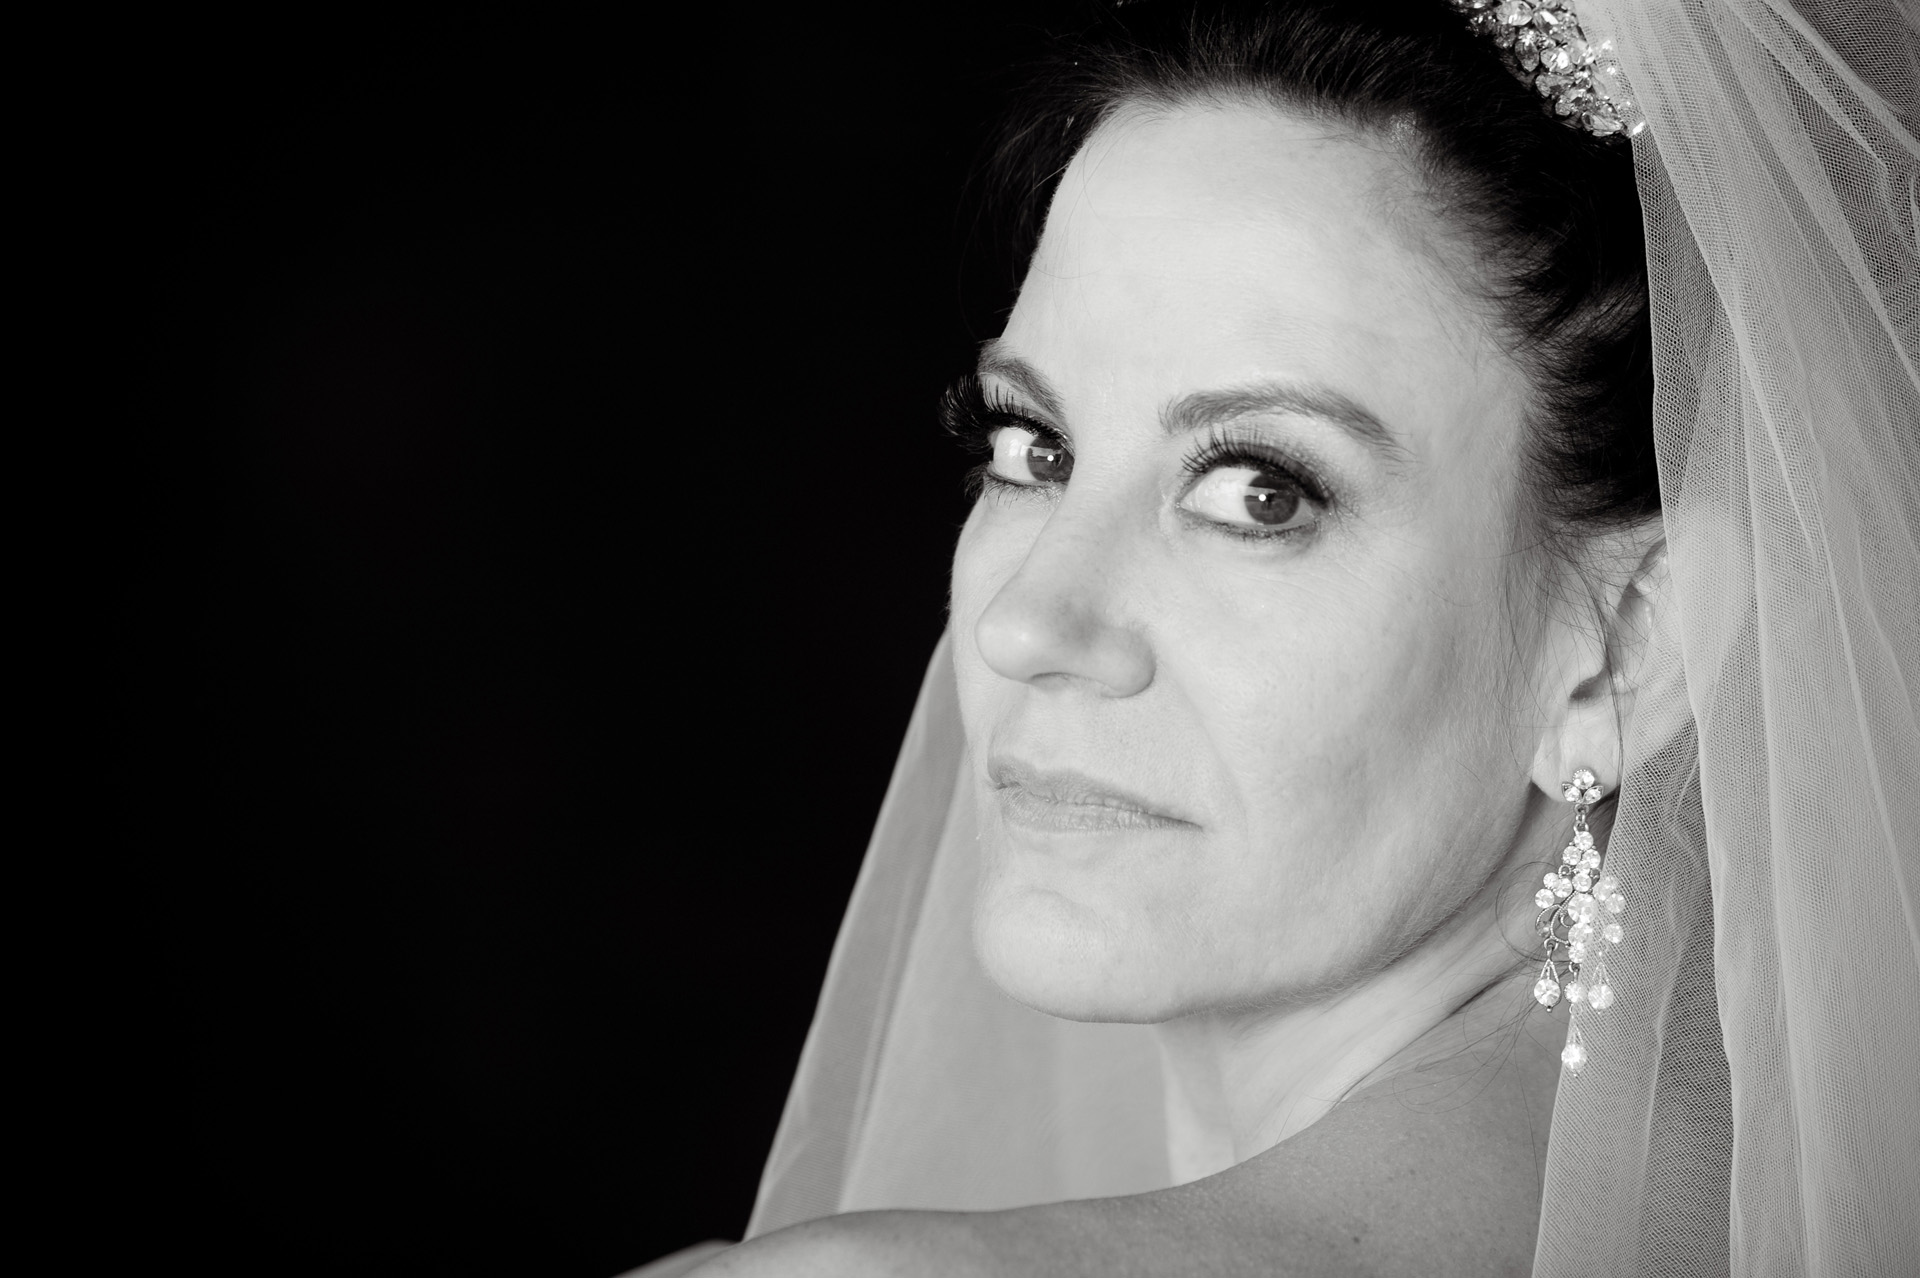 A family oriented wedding in Michigan features a bride in perfect light for a very quick photo shoot before her wedding at the Wyndham Garden Hotel in Sterling Heights, Michigan (formerly known as the Sterling Inn) in Macomb County, Michigan.